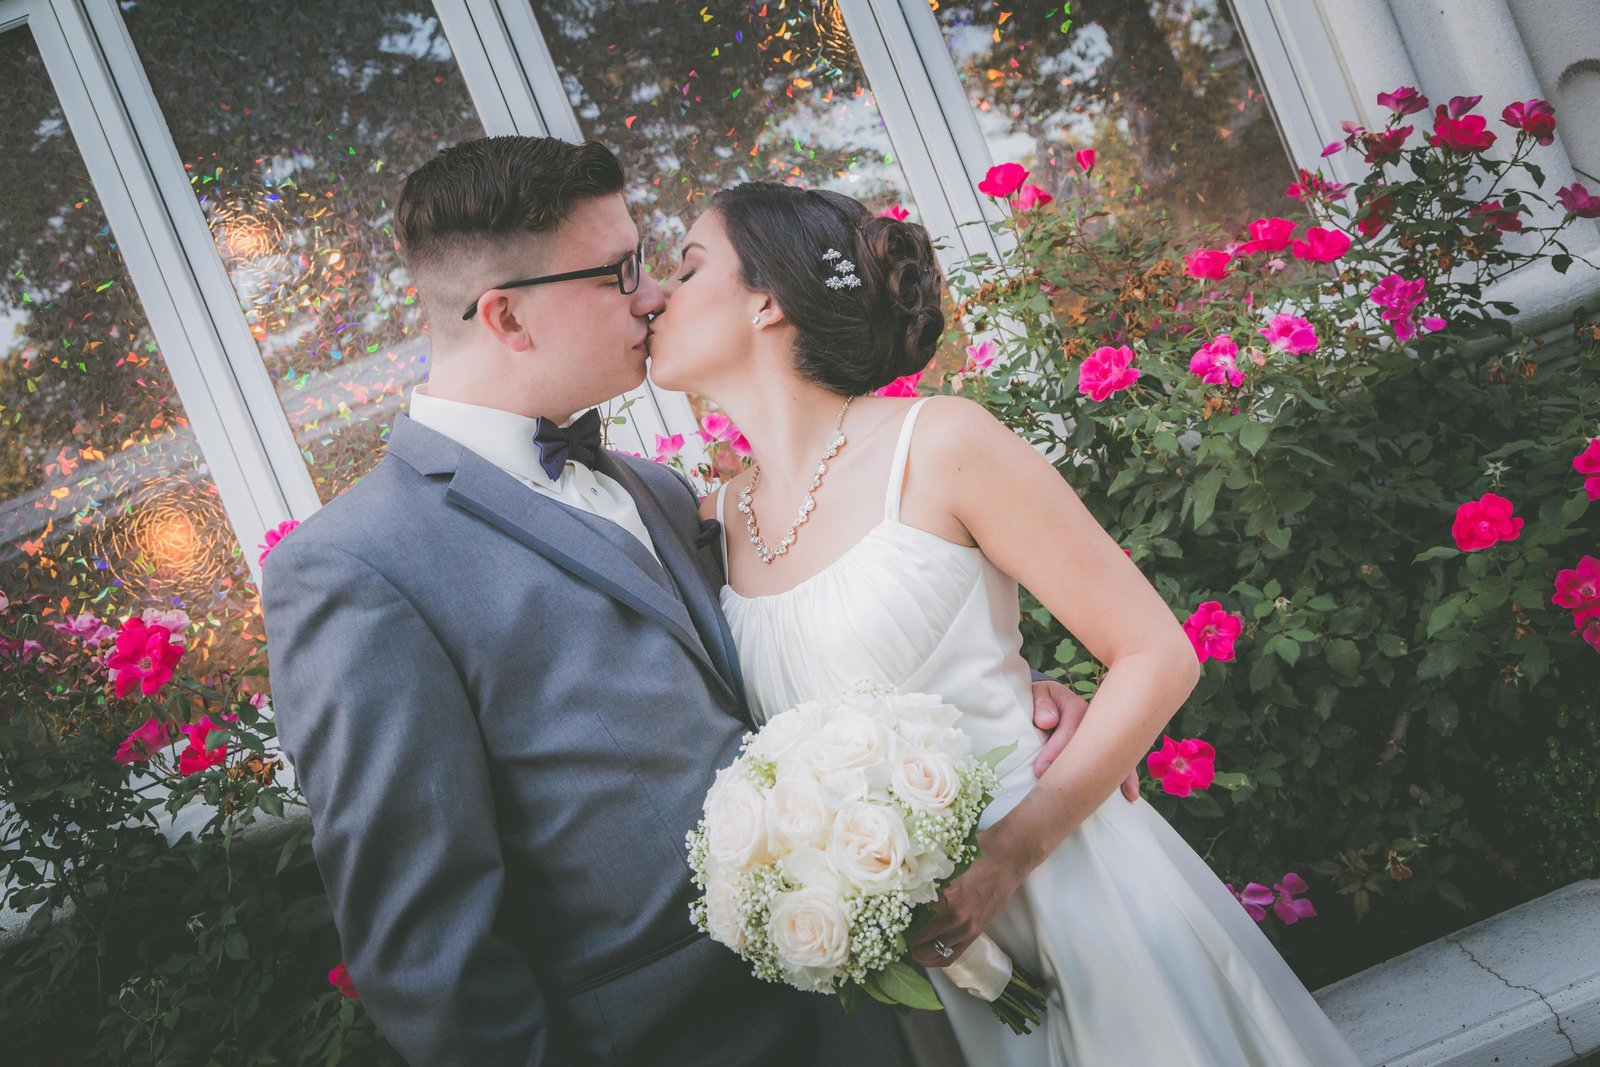 Bride and groom kiss against flower and window background in Connecticut.